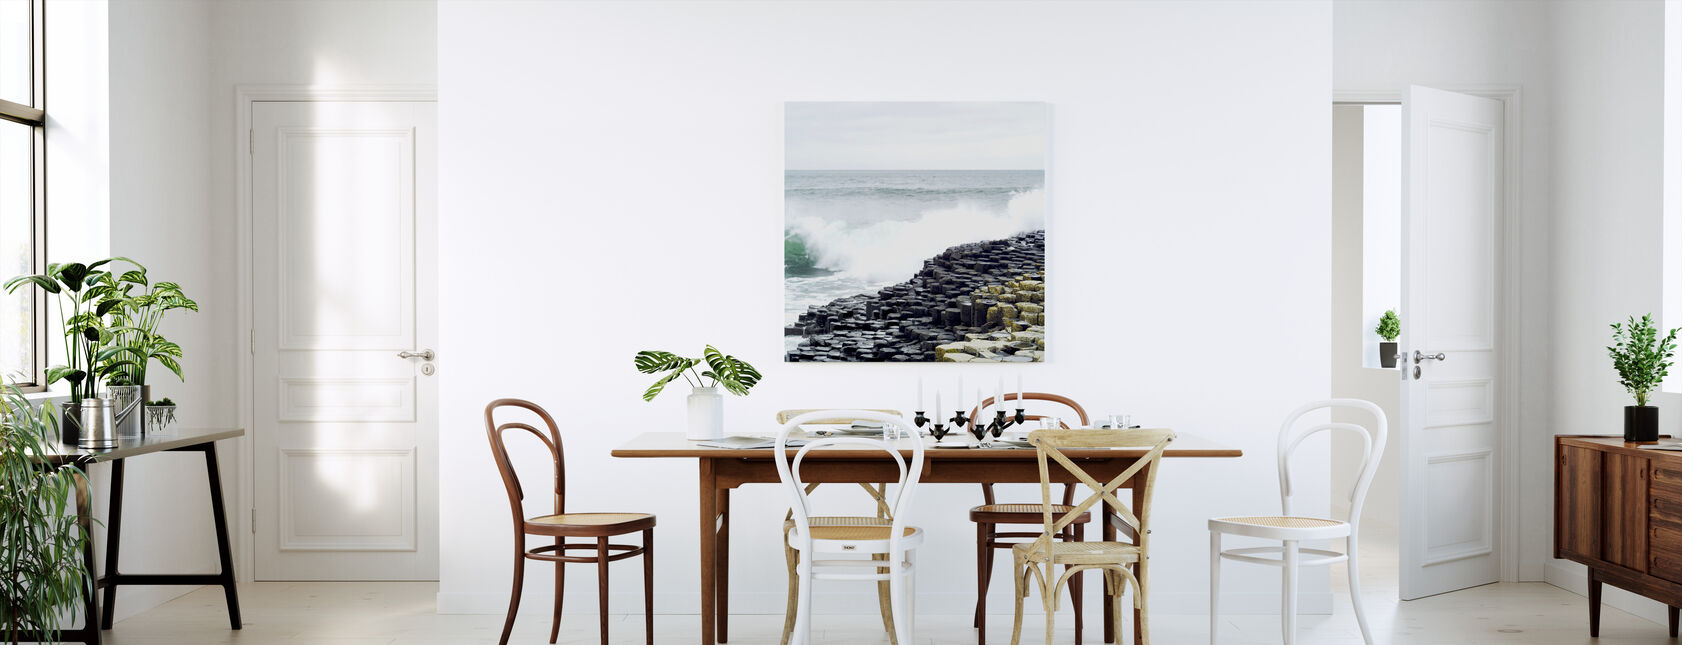 Waves Crashing in Giants Causeway - Canvas print - Kitchen